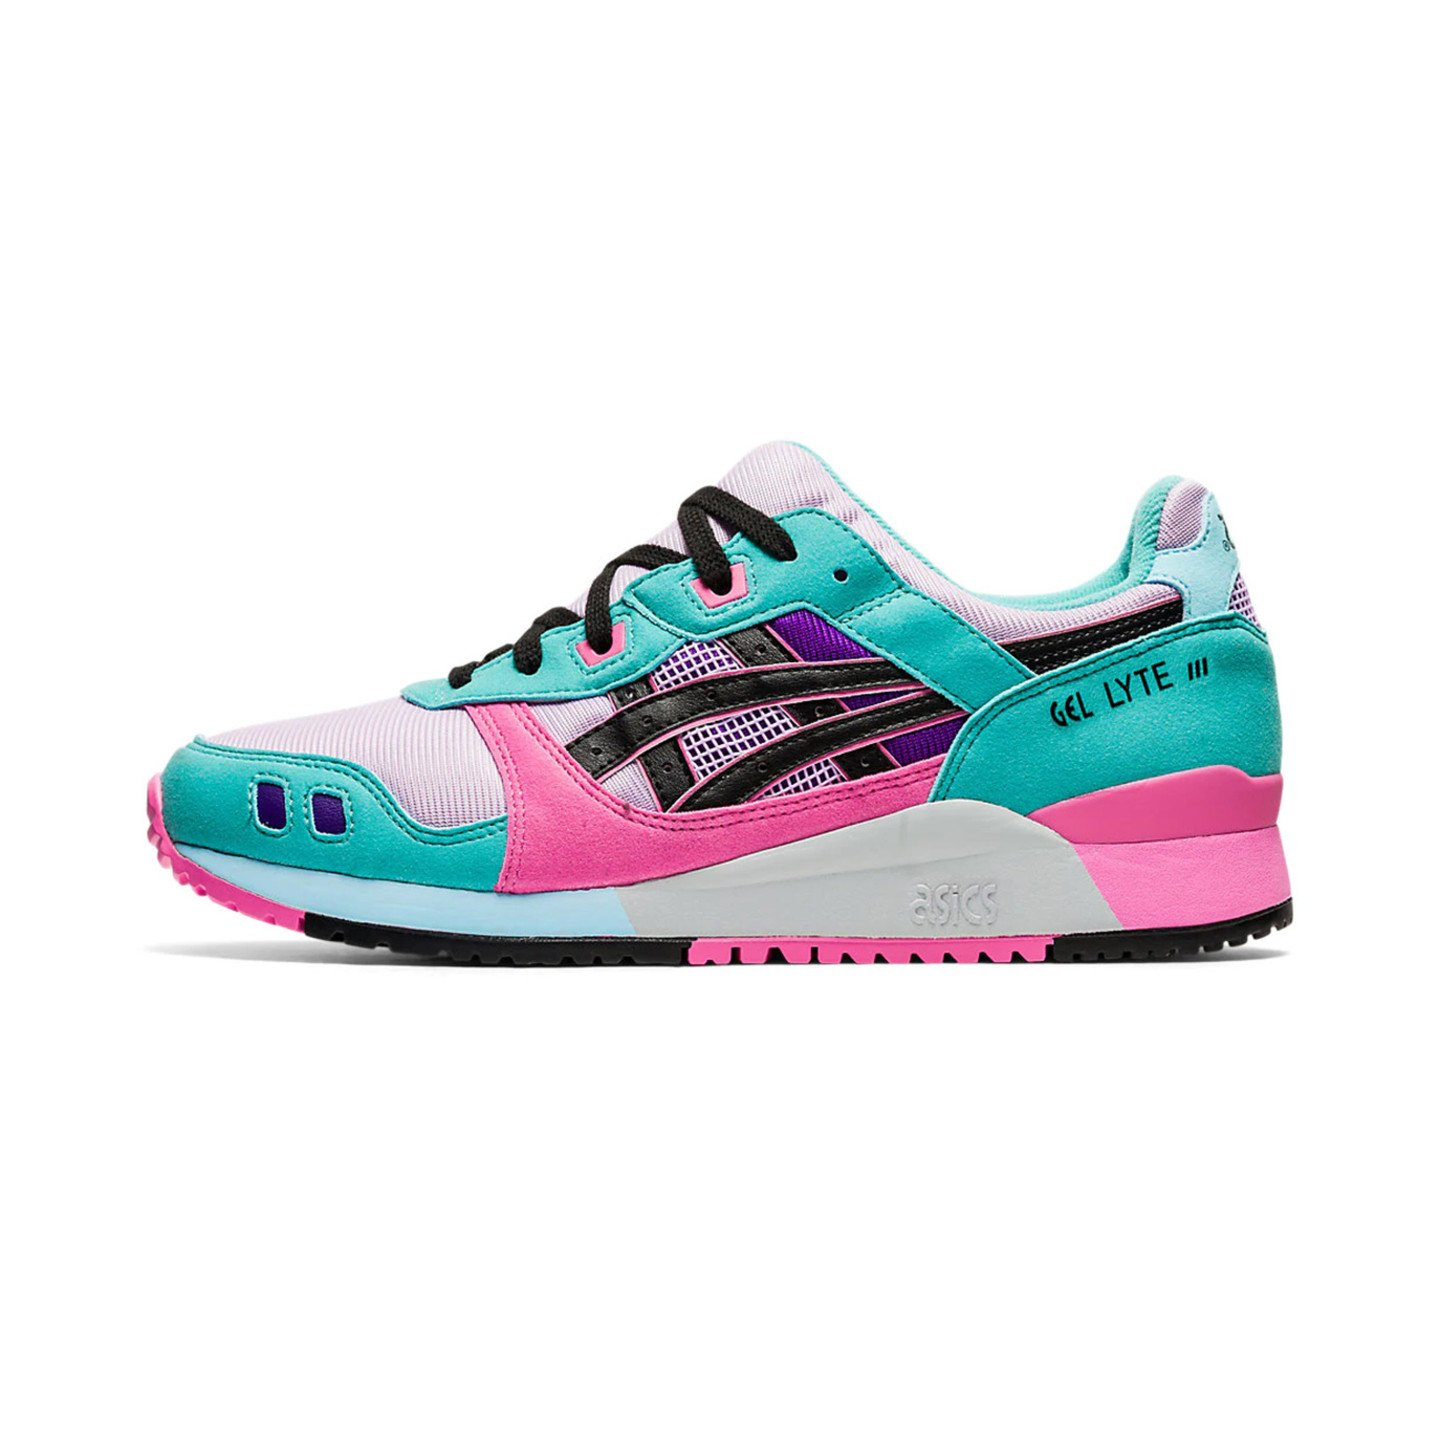 Asics Gel-Lyte III OG 'Dragon Fruit' Lilac Tech/Dragon Fruit 1201A051-100